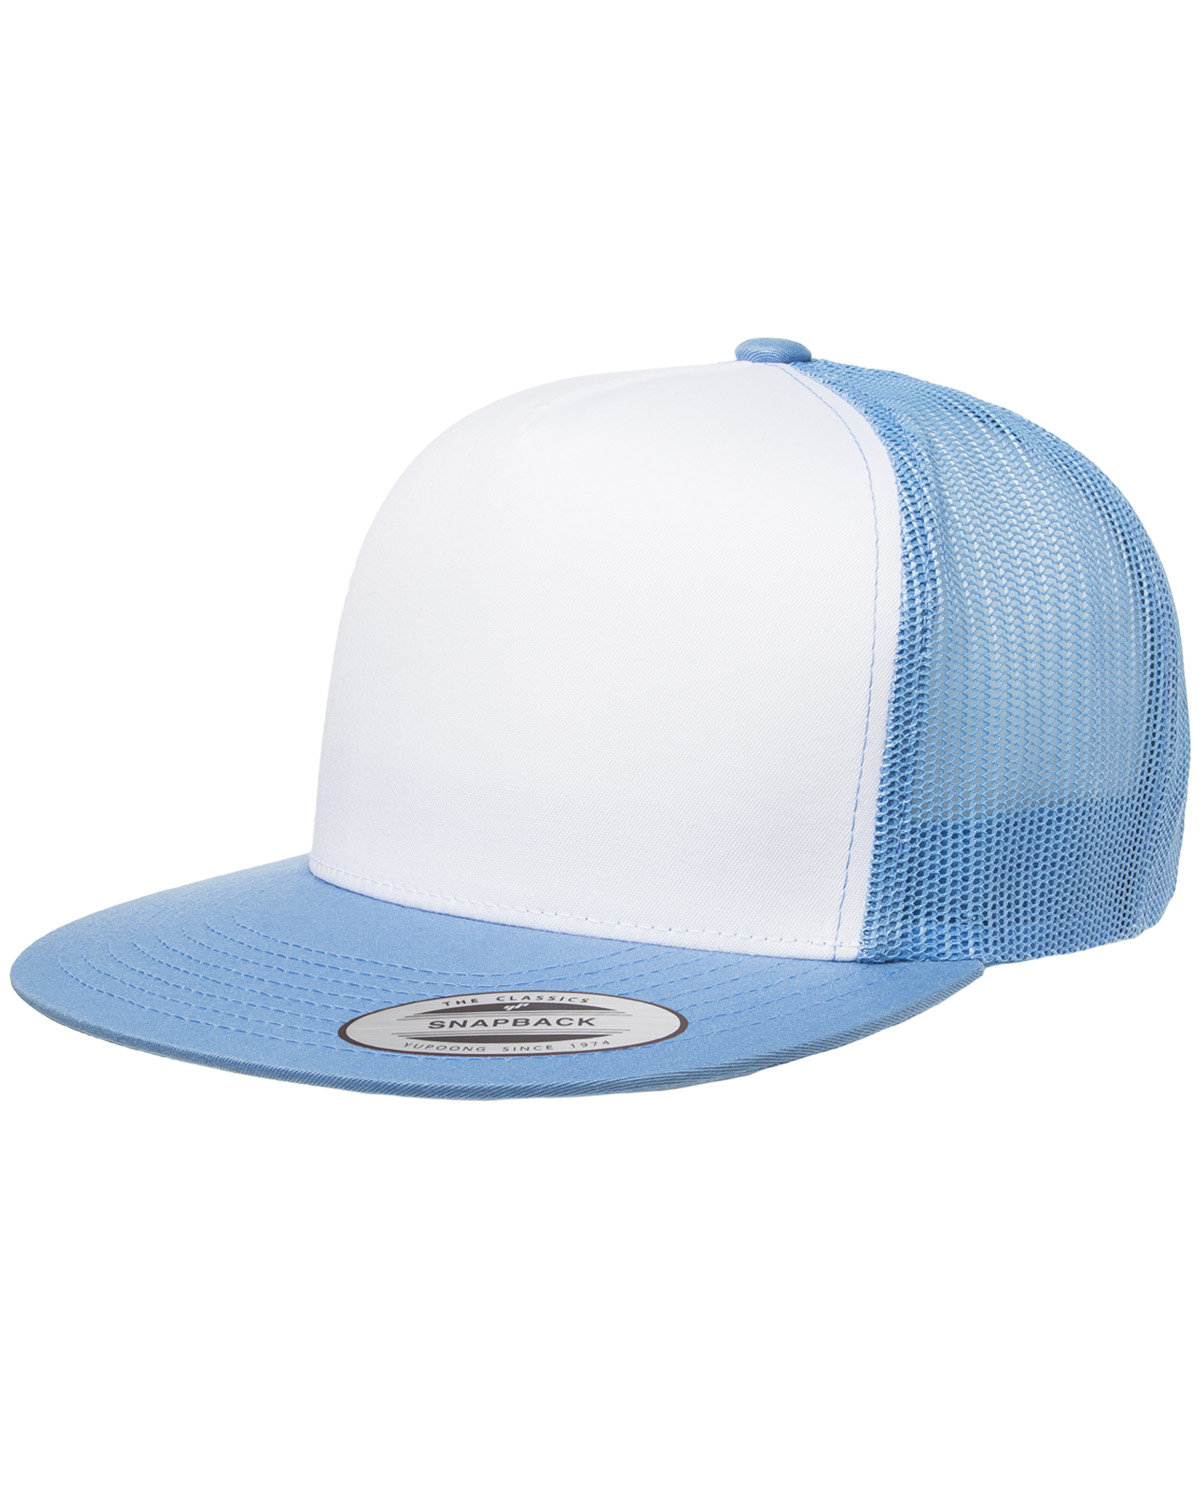 Yupoong Adult Classic Trucker with White Front Panel Cap C BL/ WHT/ C BLU